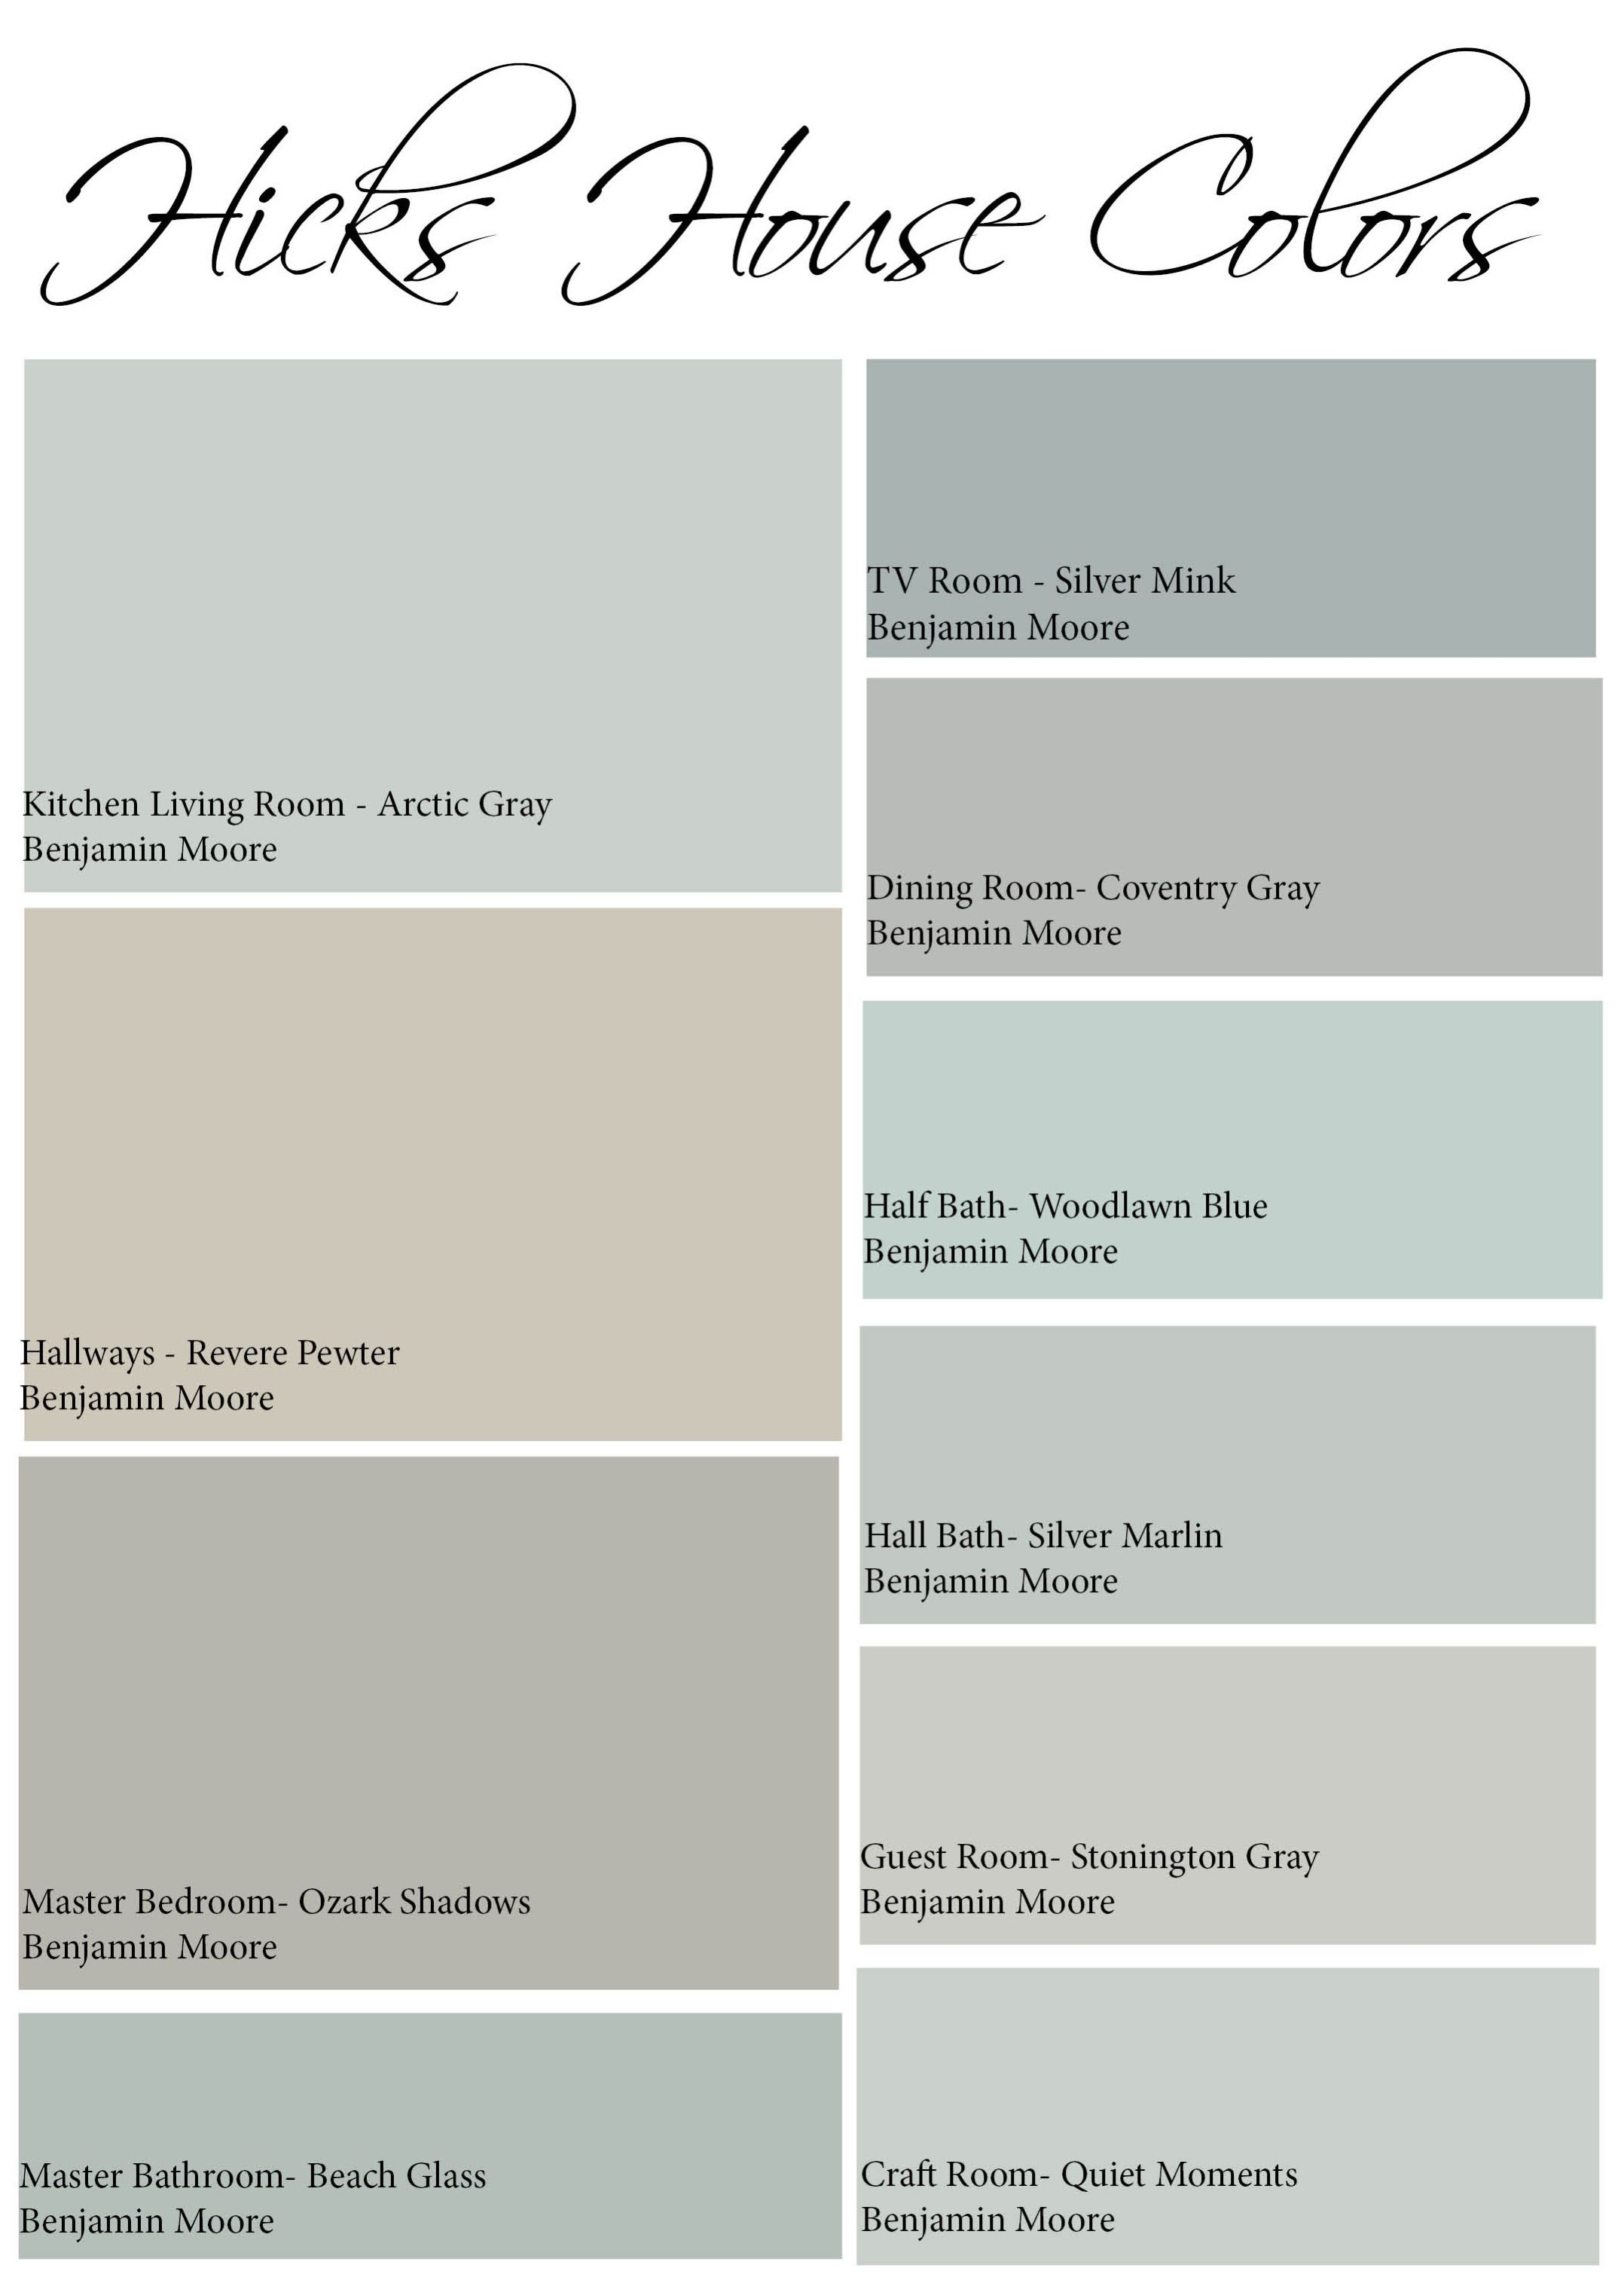 Pretty | Paint colors | Pinterest | Upstairs hallway, Room colors ...